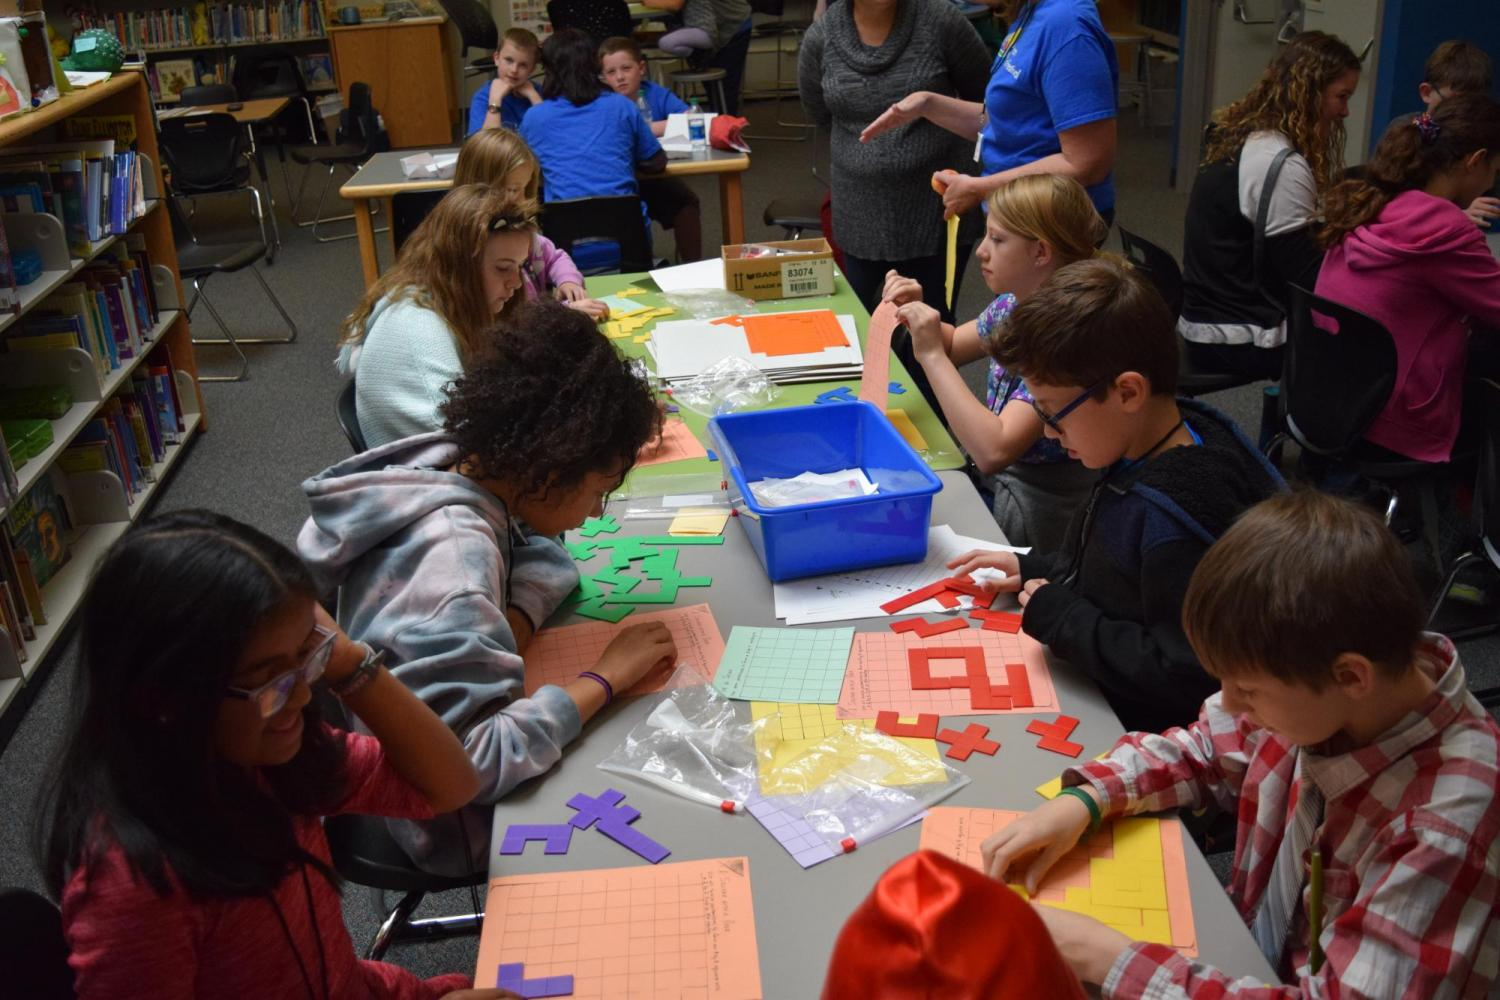 Students get involved in hands-on math activities.